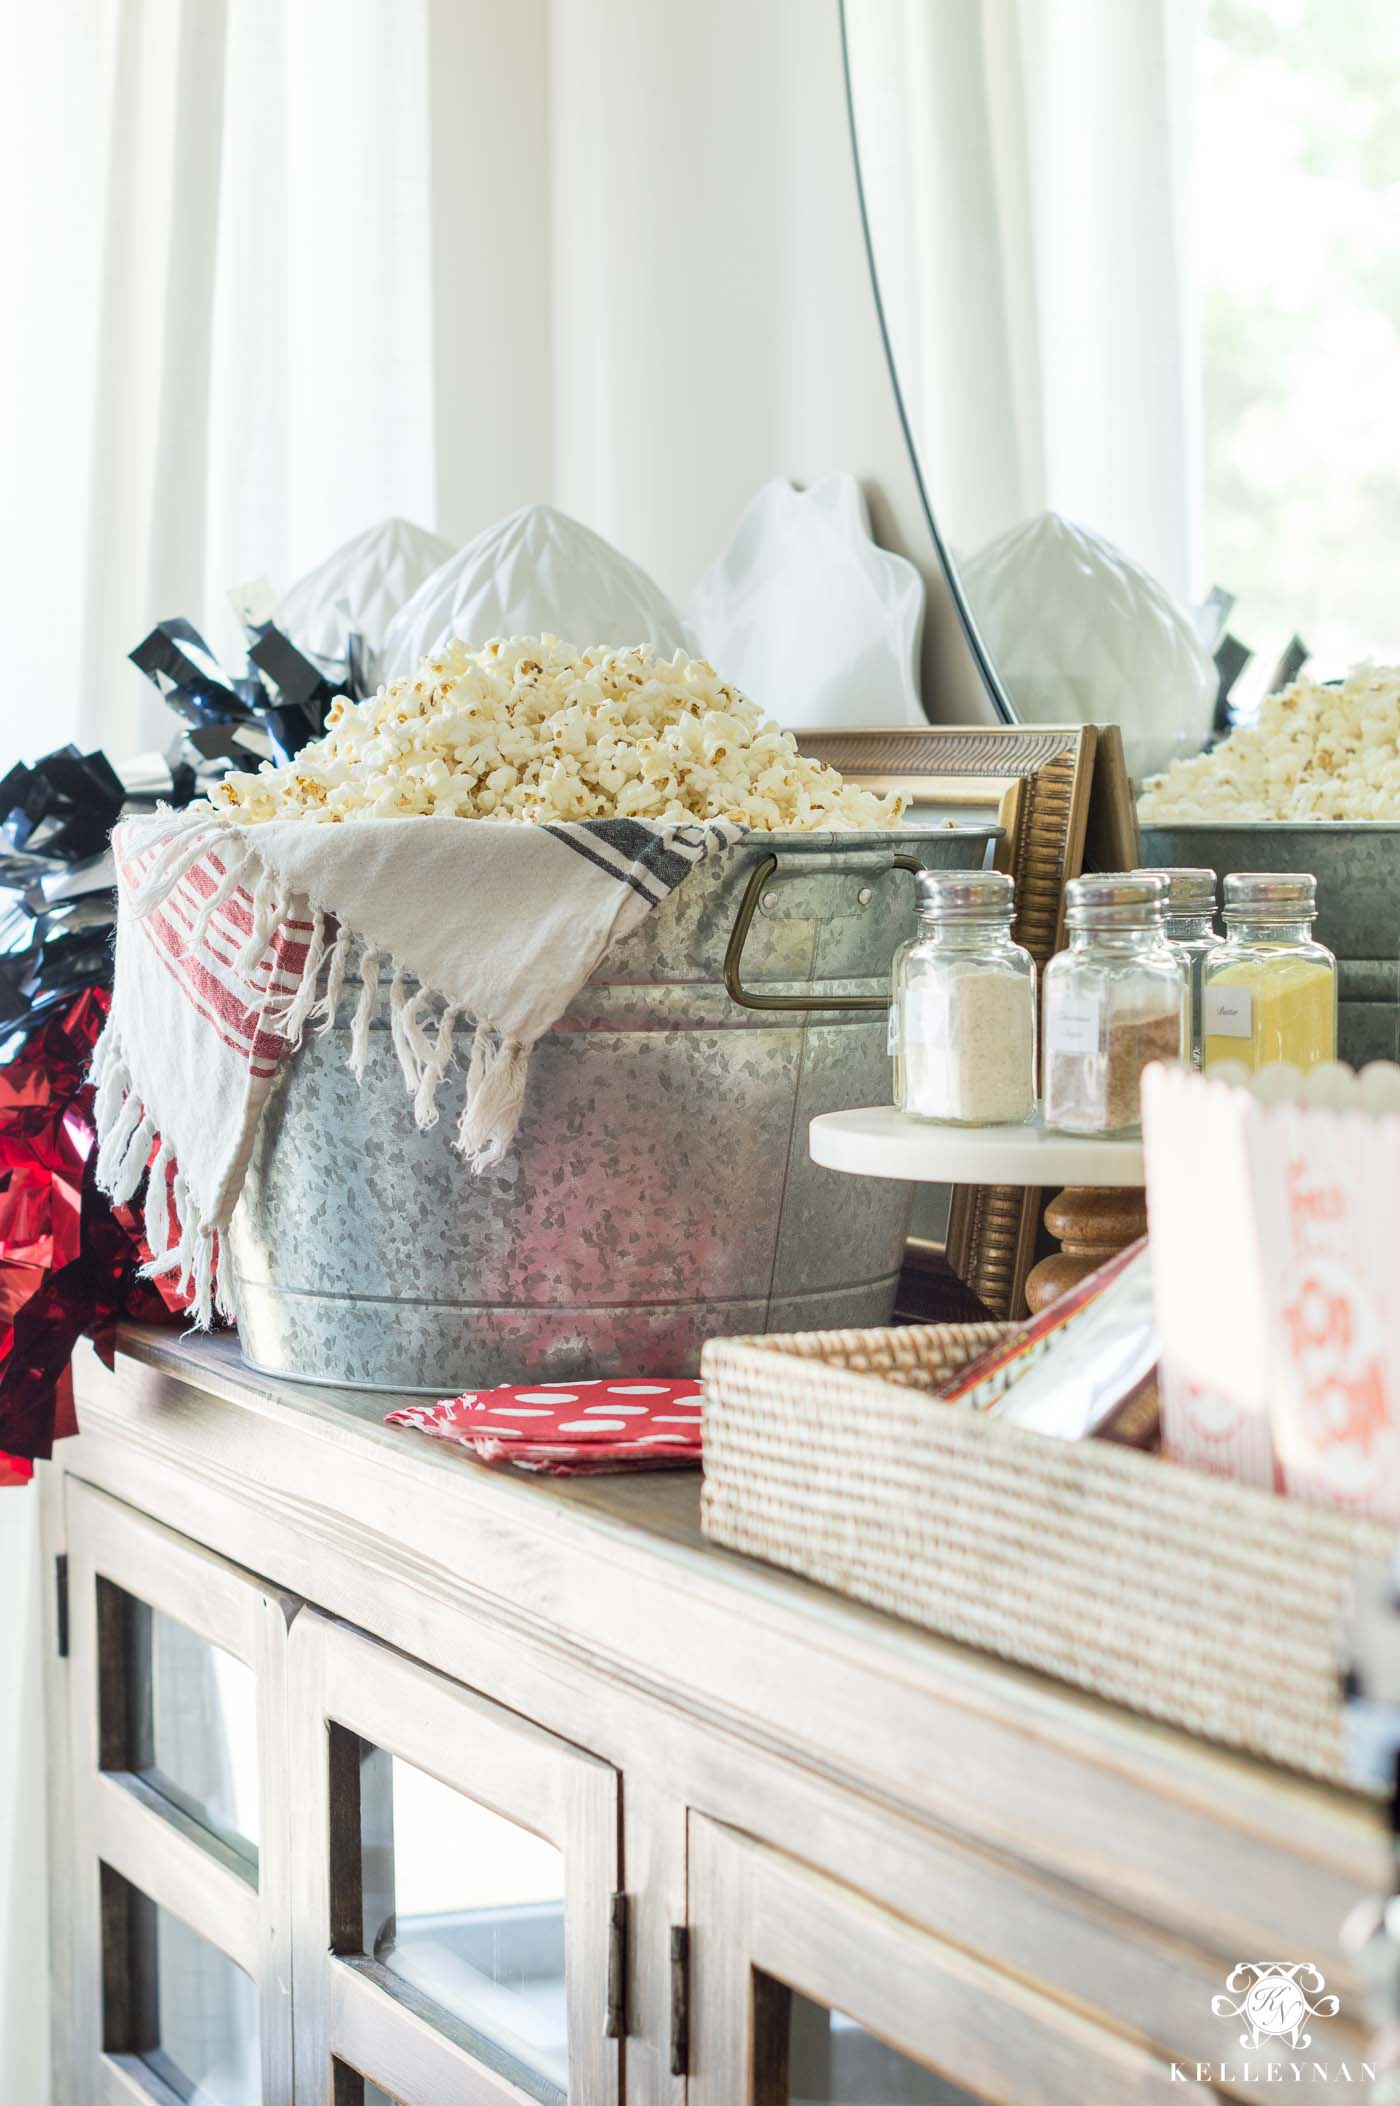 Popcorn bar ideas for football parties